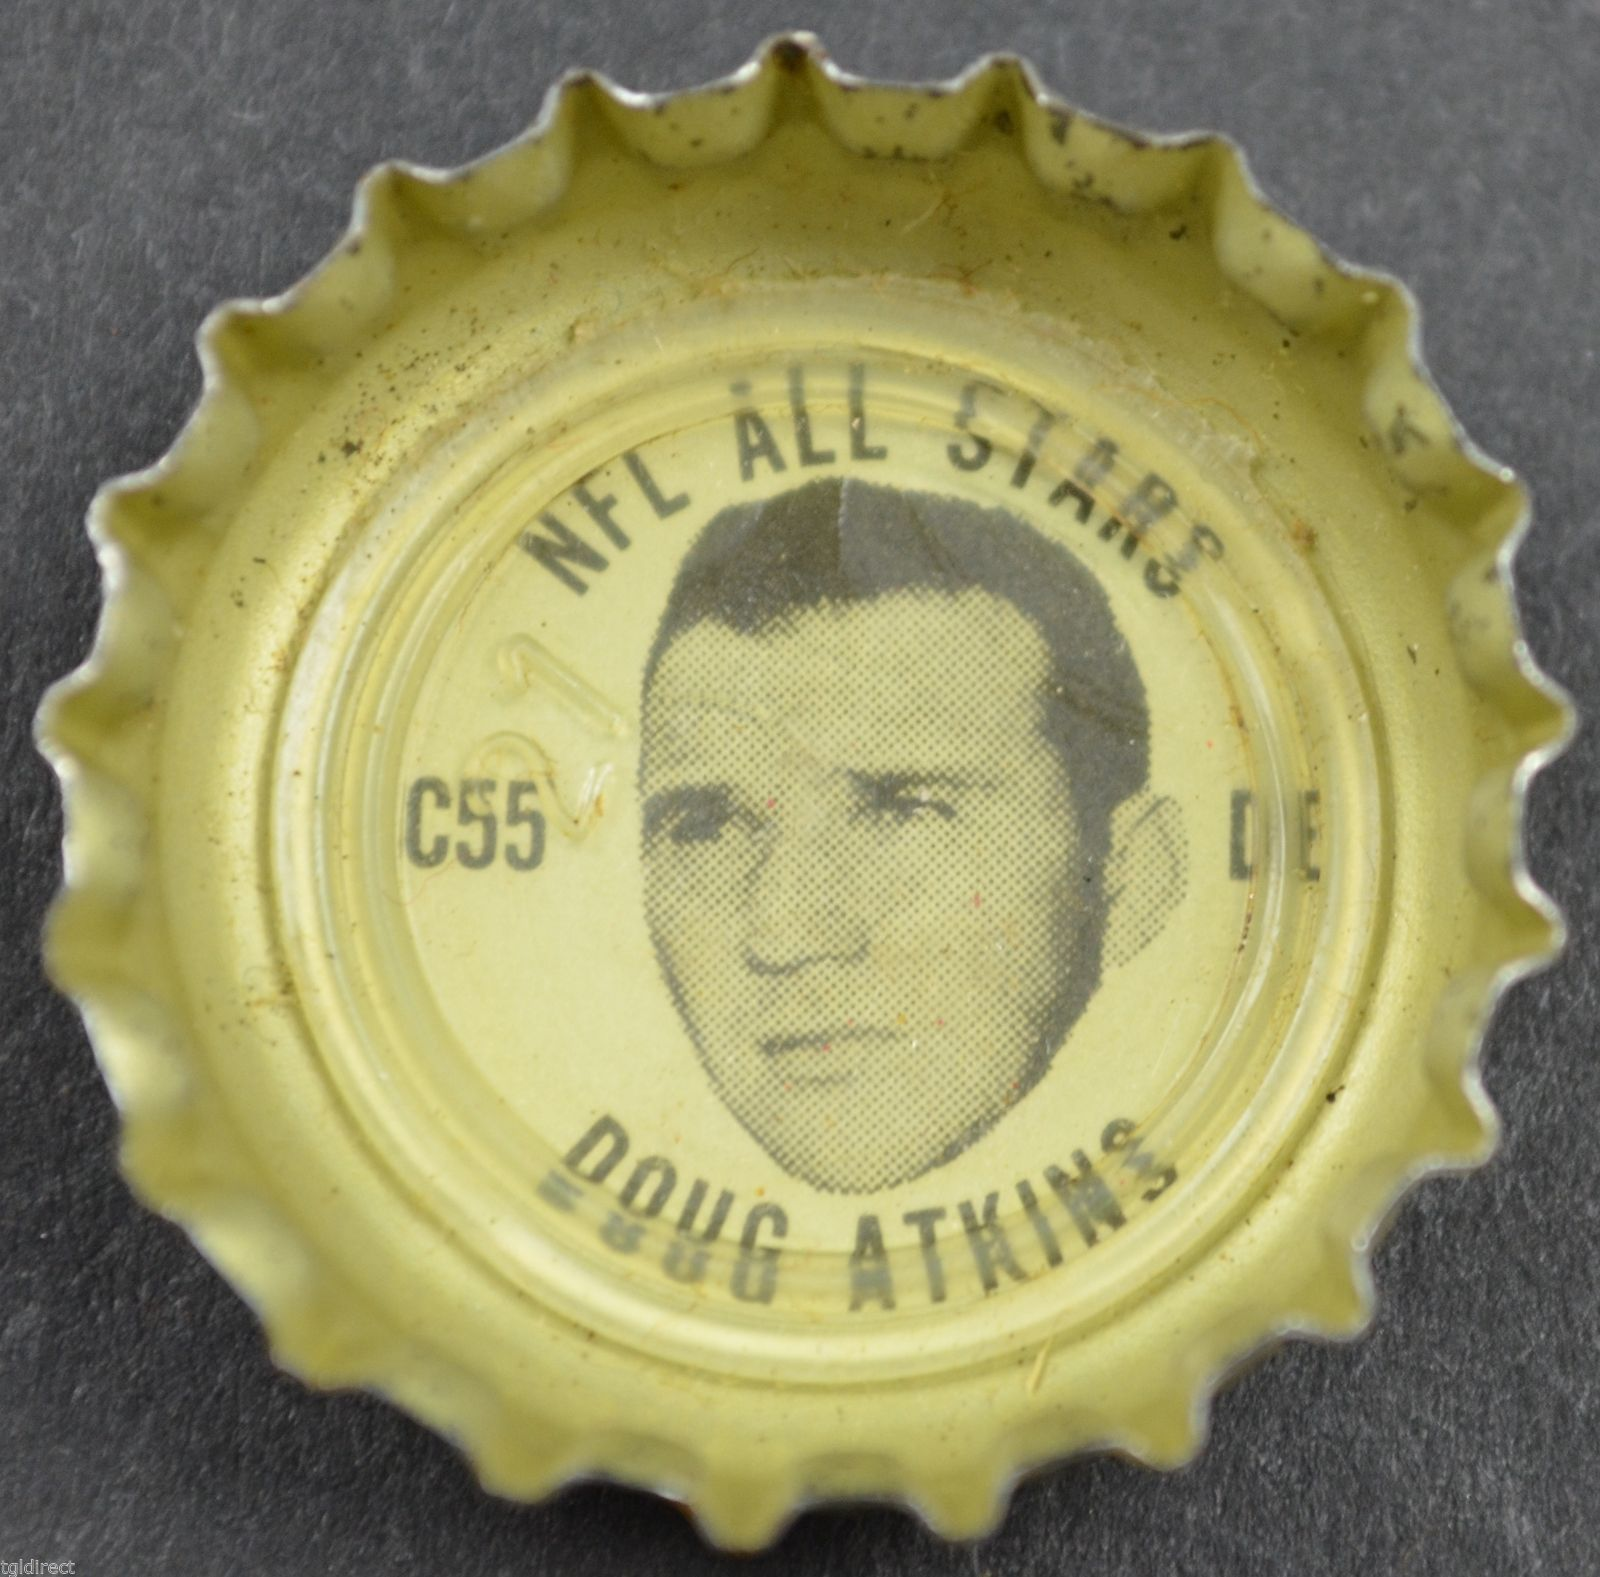 Primary image for Vintage Coca Cola NFL All Stars Bottle Cap Chicago Bears Doug Atkins Coke Soda